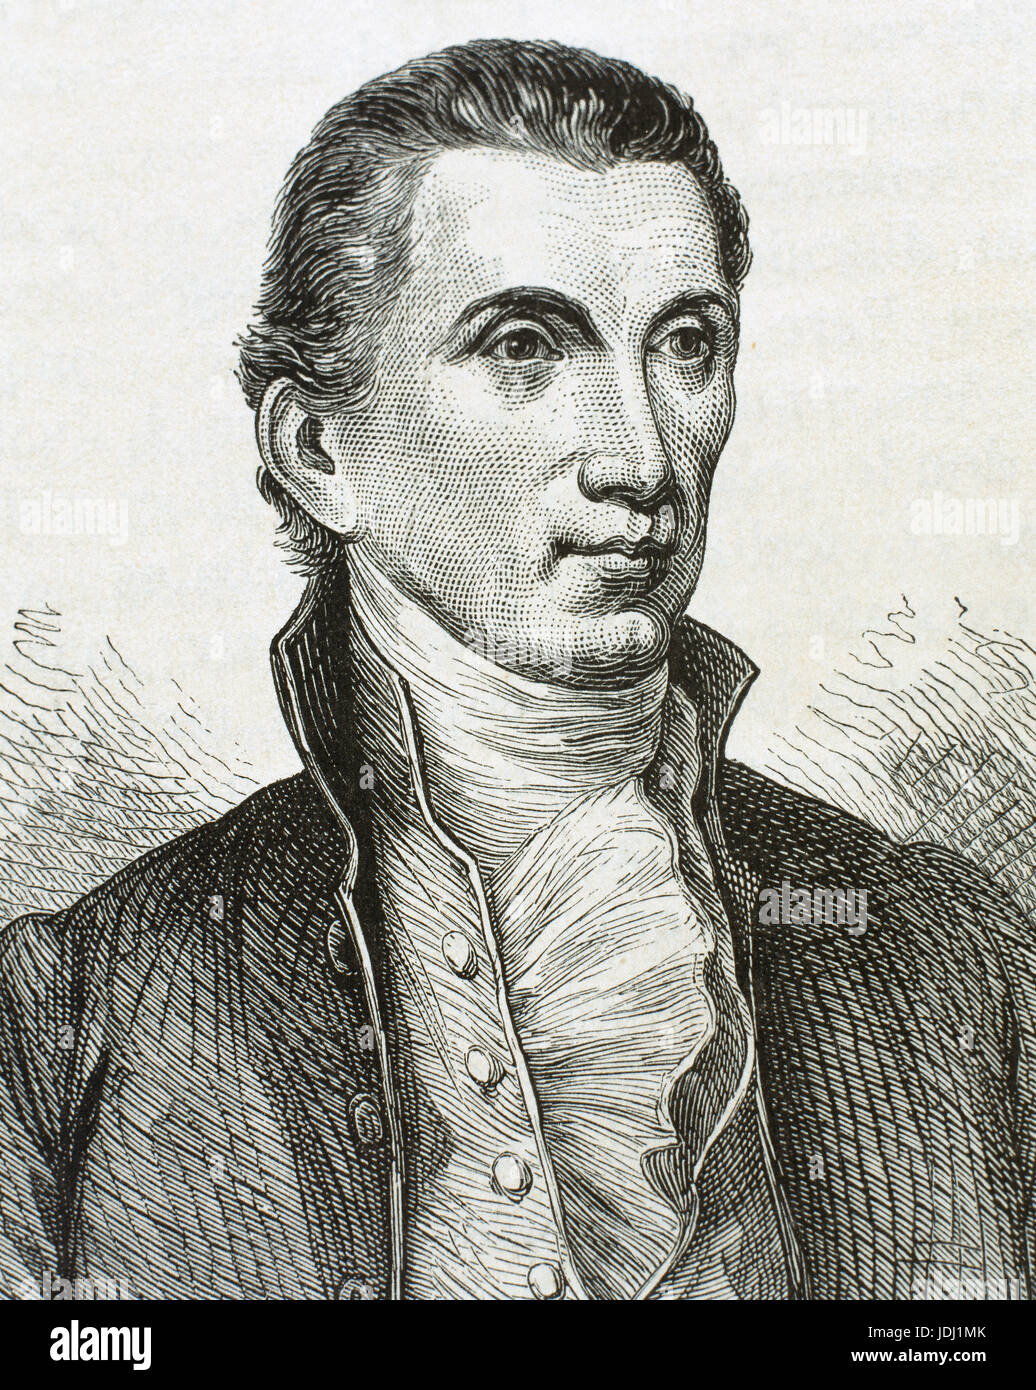 James Monroe (1758-1831). Fifth President of the United States (1817–1825). Last president who was a Founding Father - Stock Image